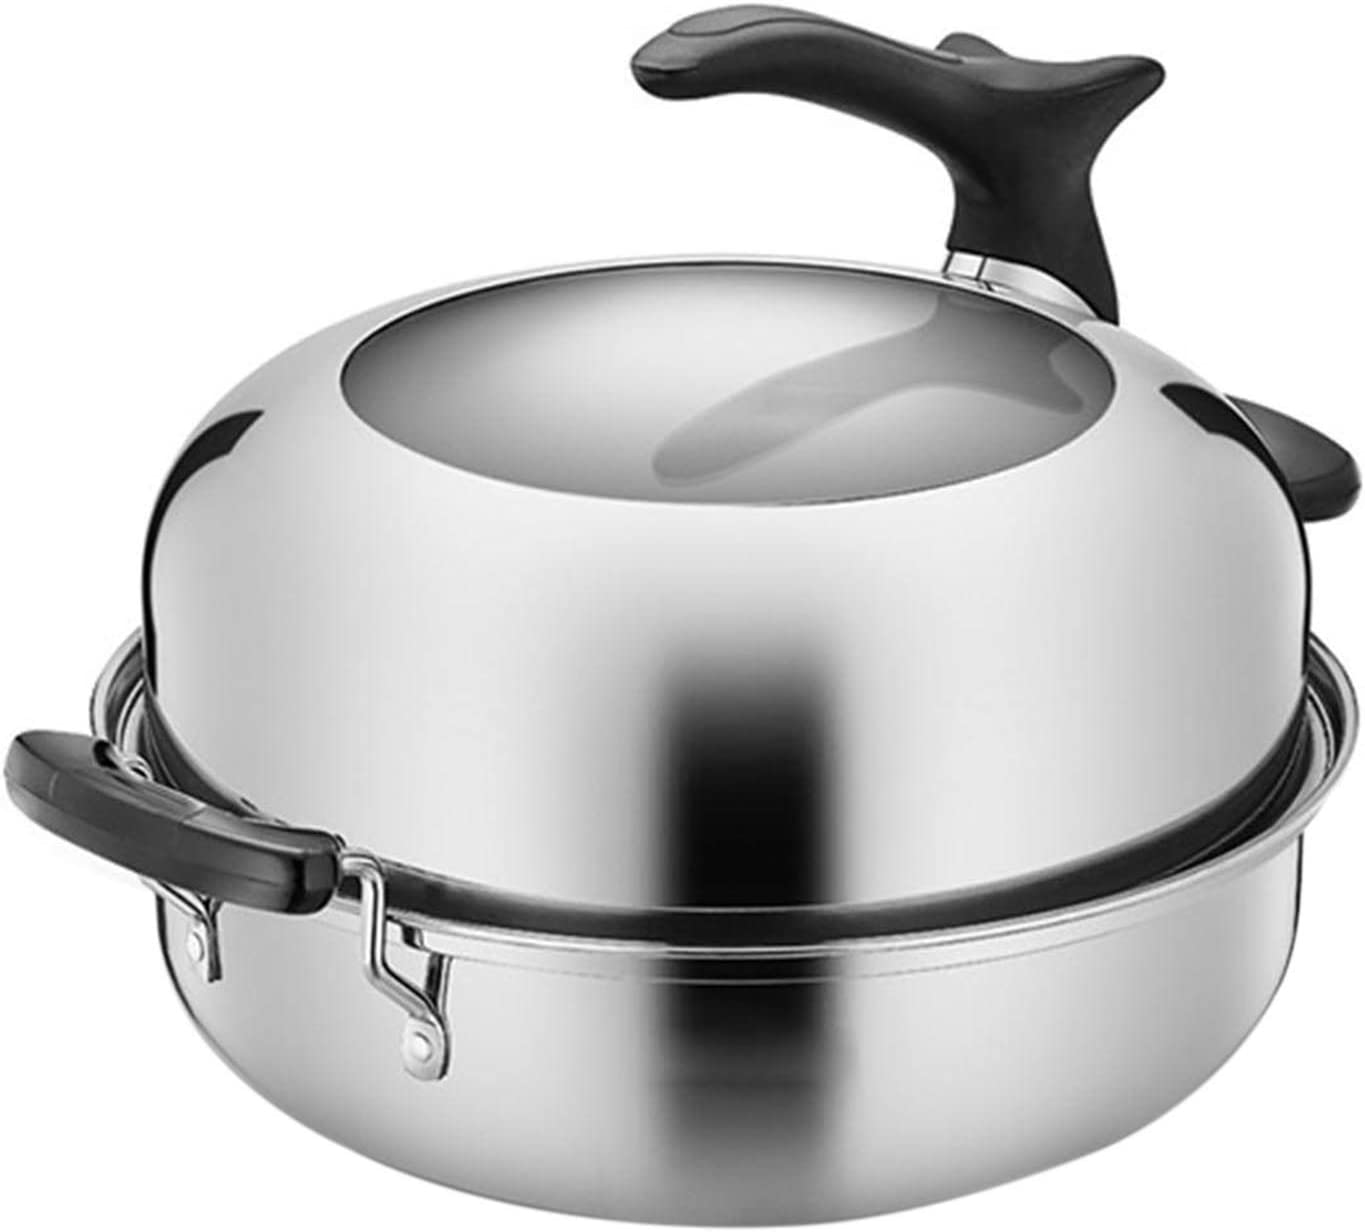 Soapow Steaming Pot With Insert Basket And 5 ☆ free popular Lid Steamer Cookware